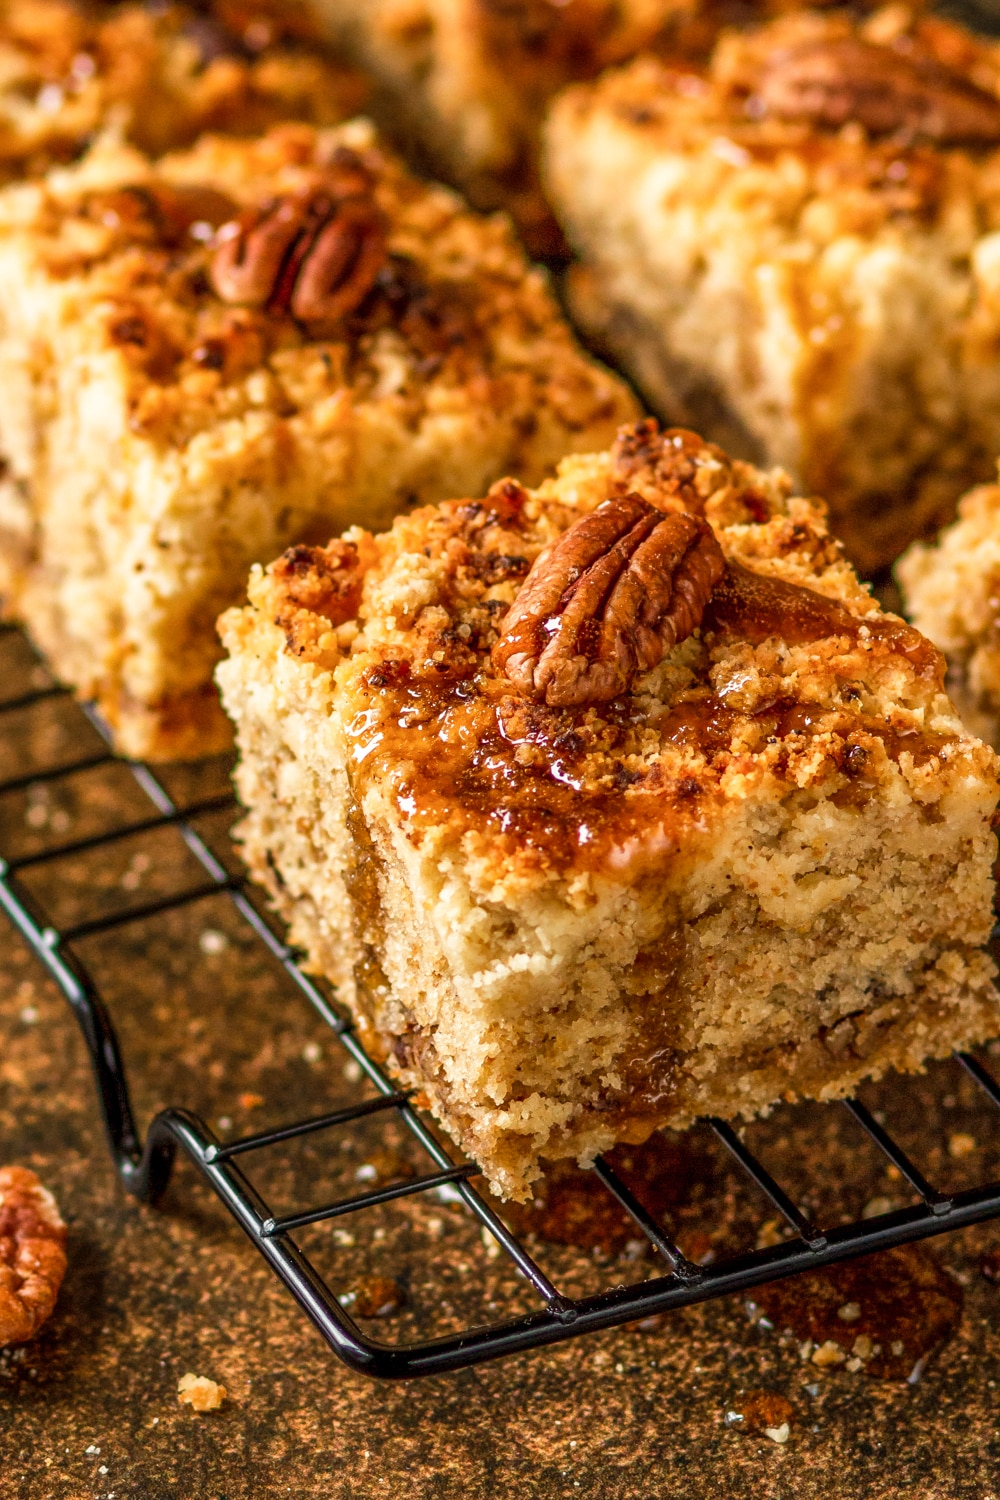 A close up view of a piece of coffee cake with multiple pieces of coffee cake behind it. Each piece of coffee cake has one pecan on top and they are sitting on a wire rack.